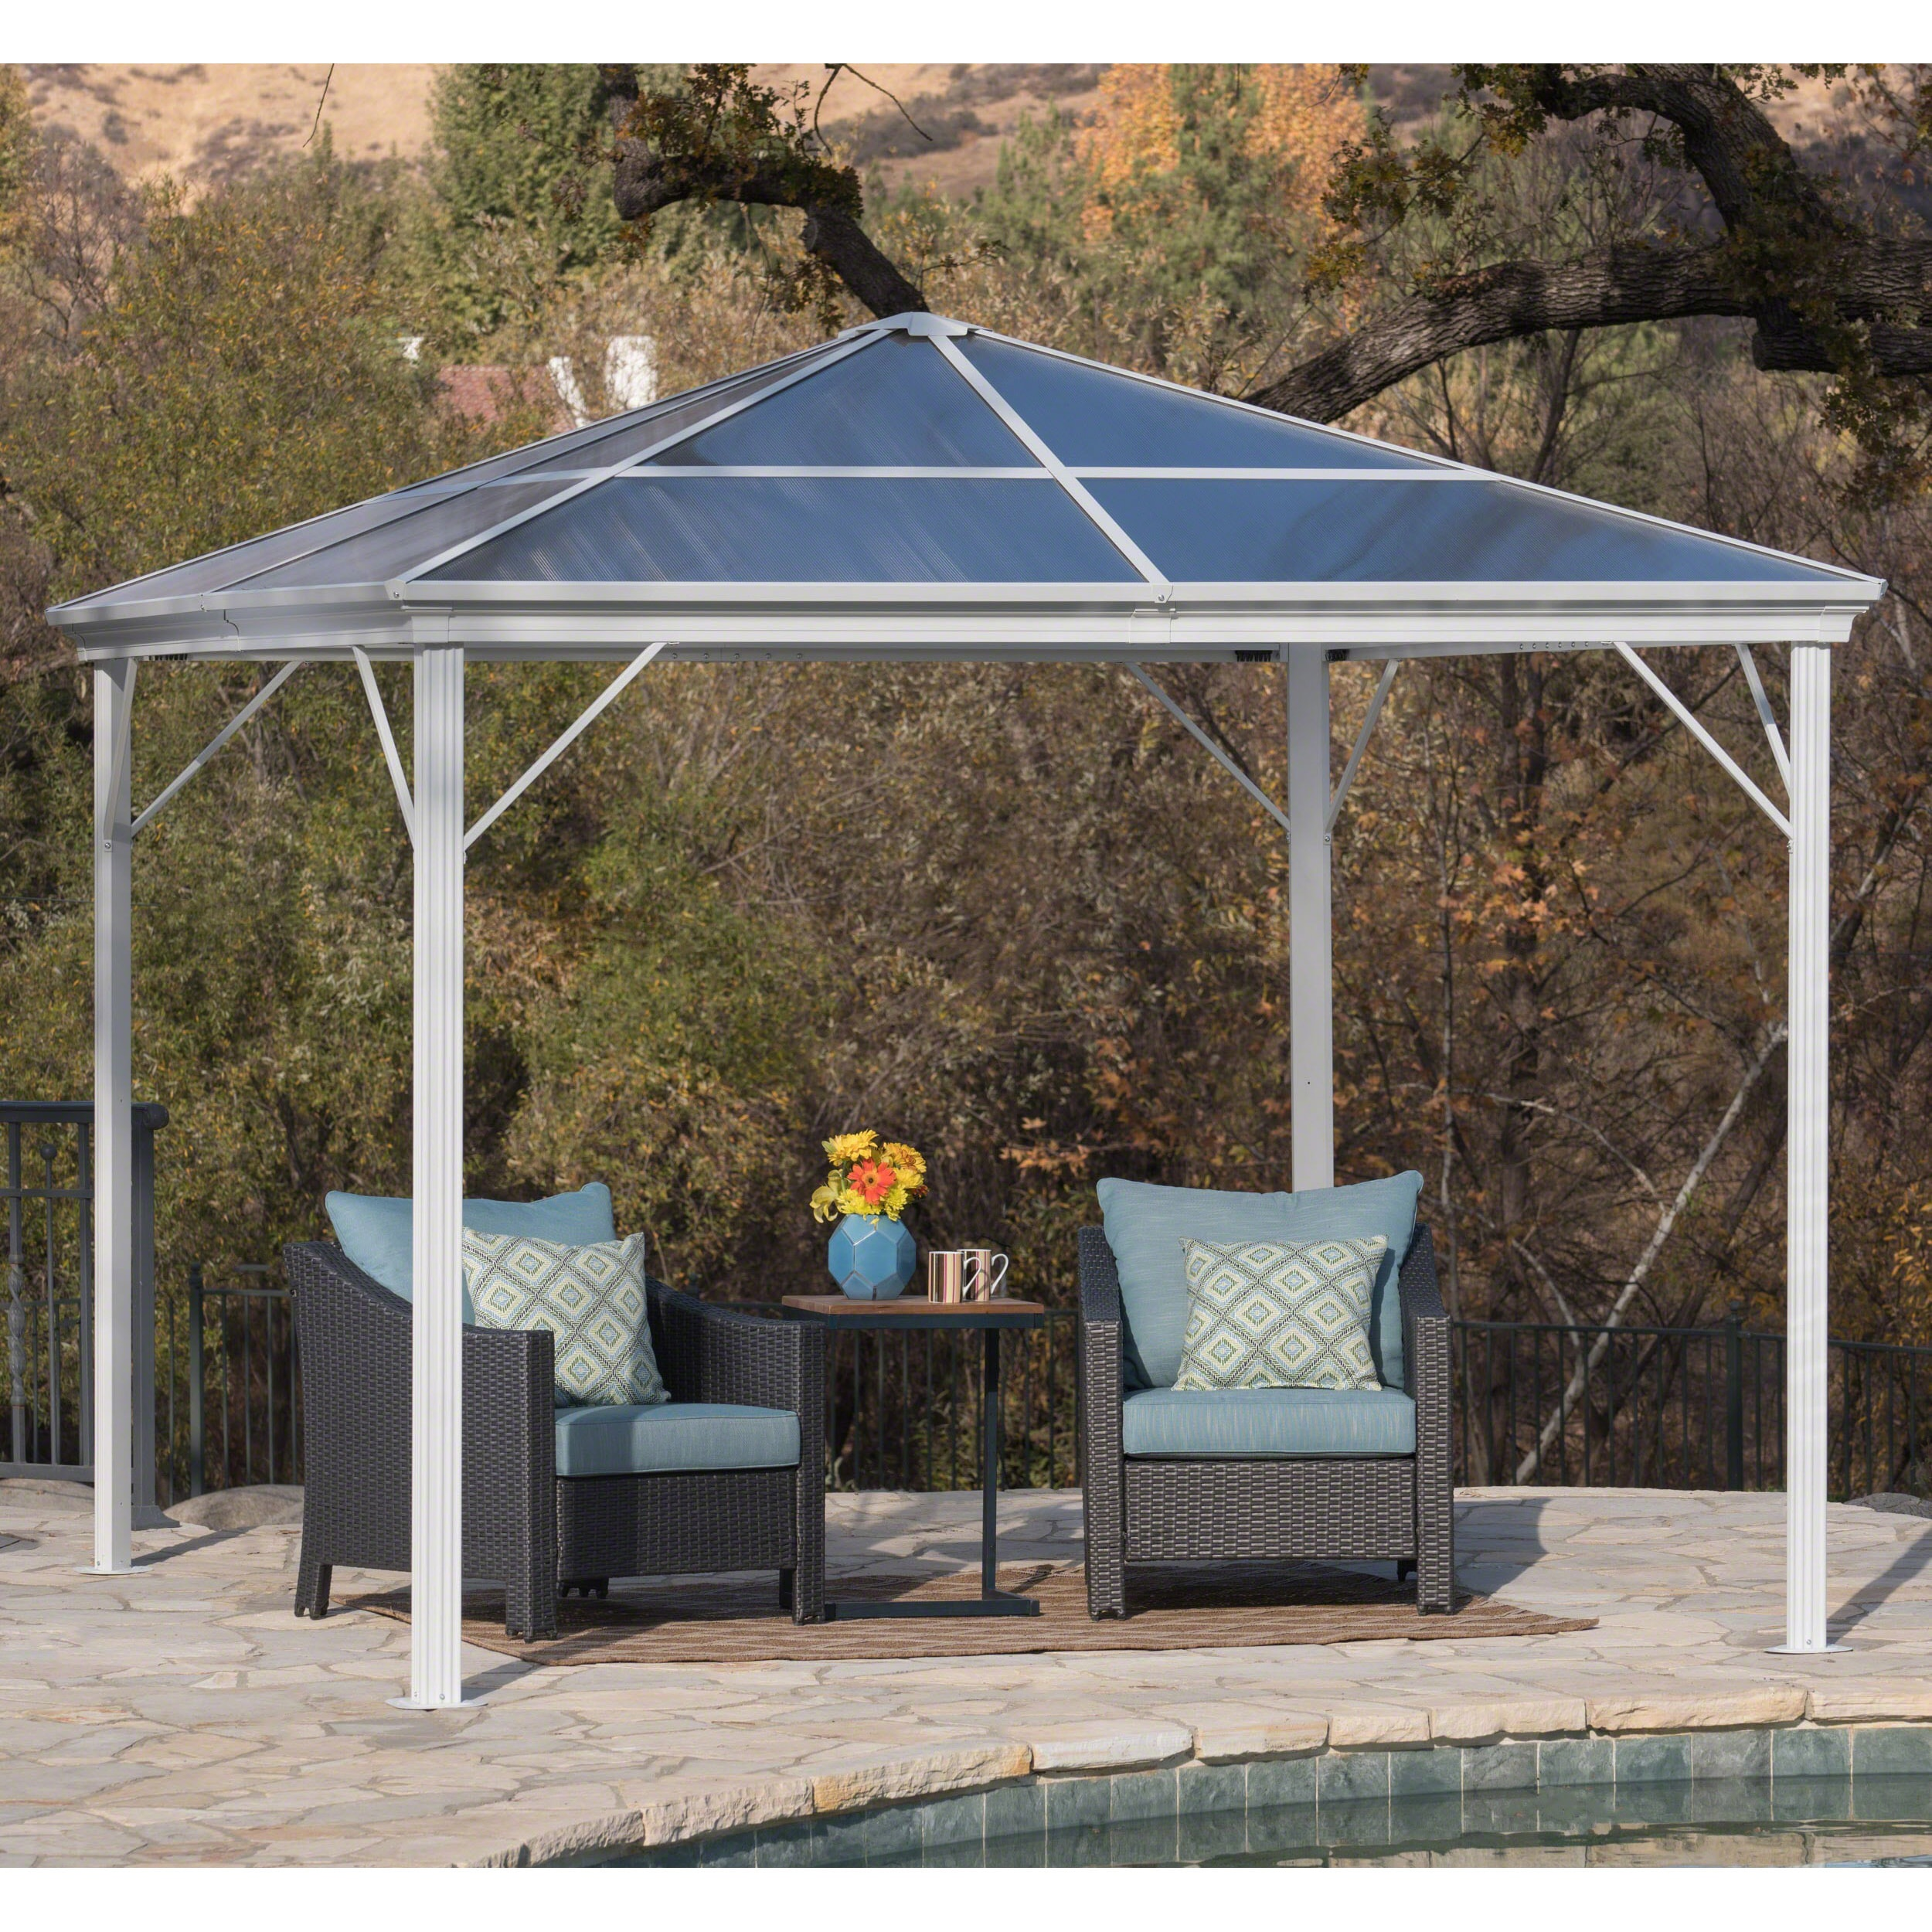 Shop Bailey Outdoor 10 ft. Aluminum Gazebo with Hardtop by ... on